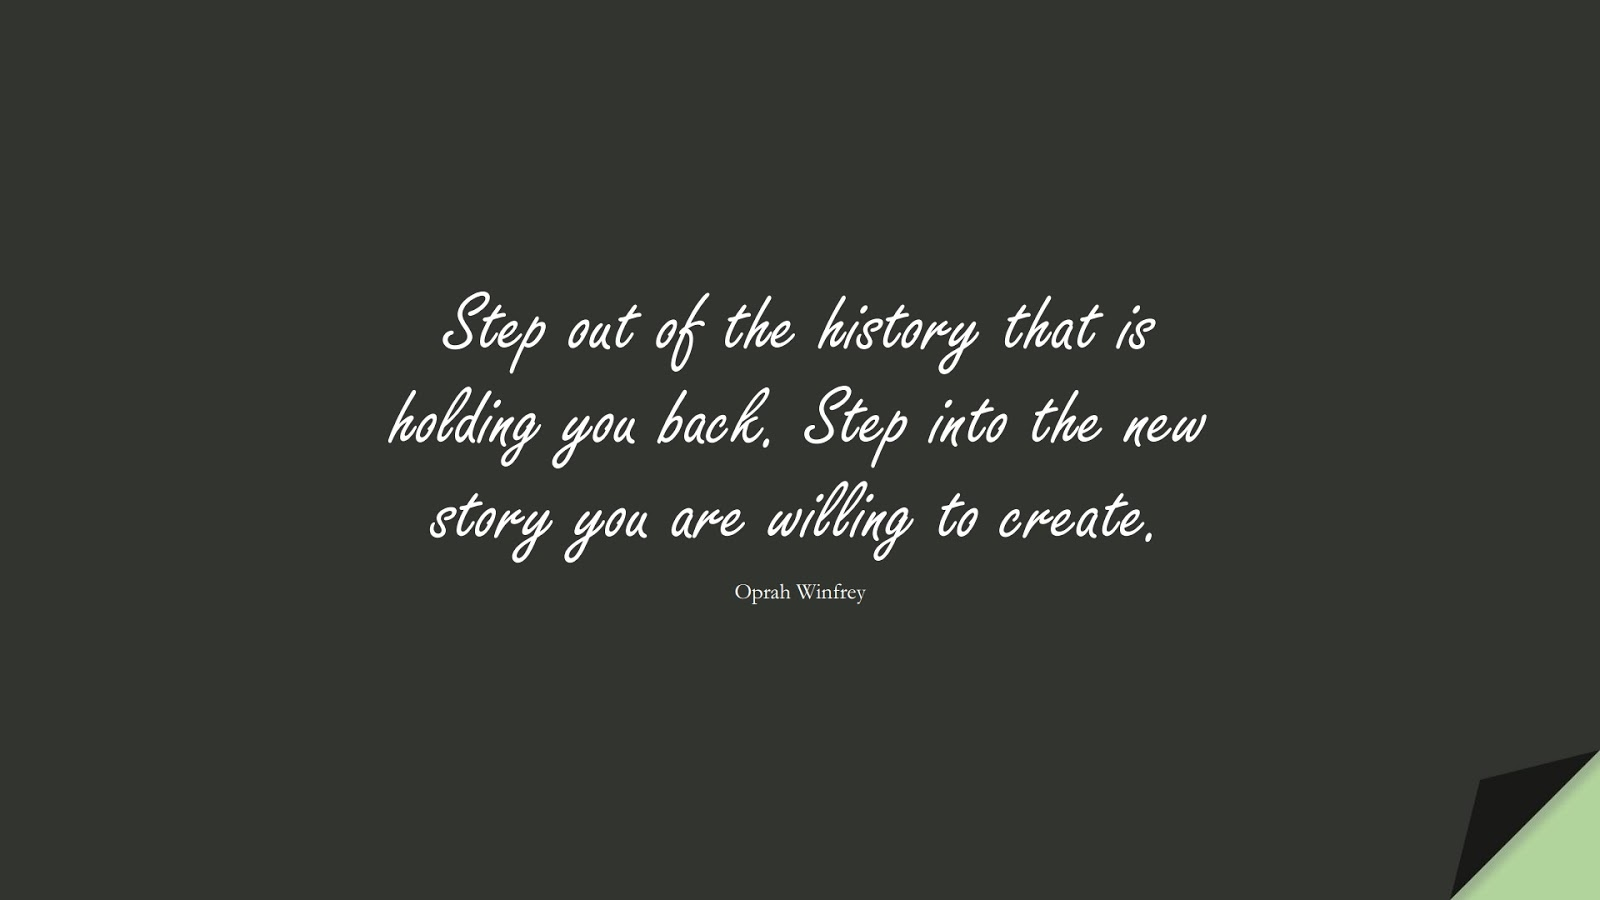 Step out of the history that is holding you back. Step into the new story you are willing to create. (Oprah Winfrey);  #ChangeQuotes